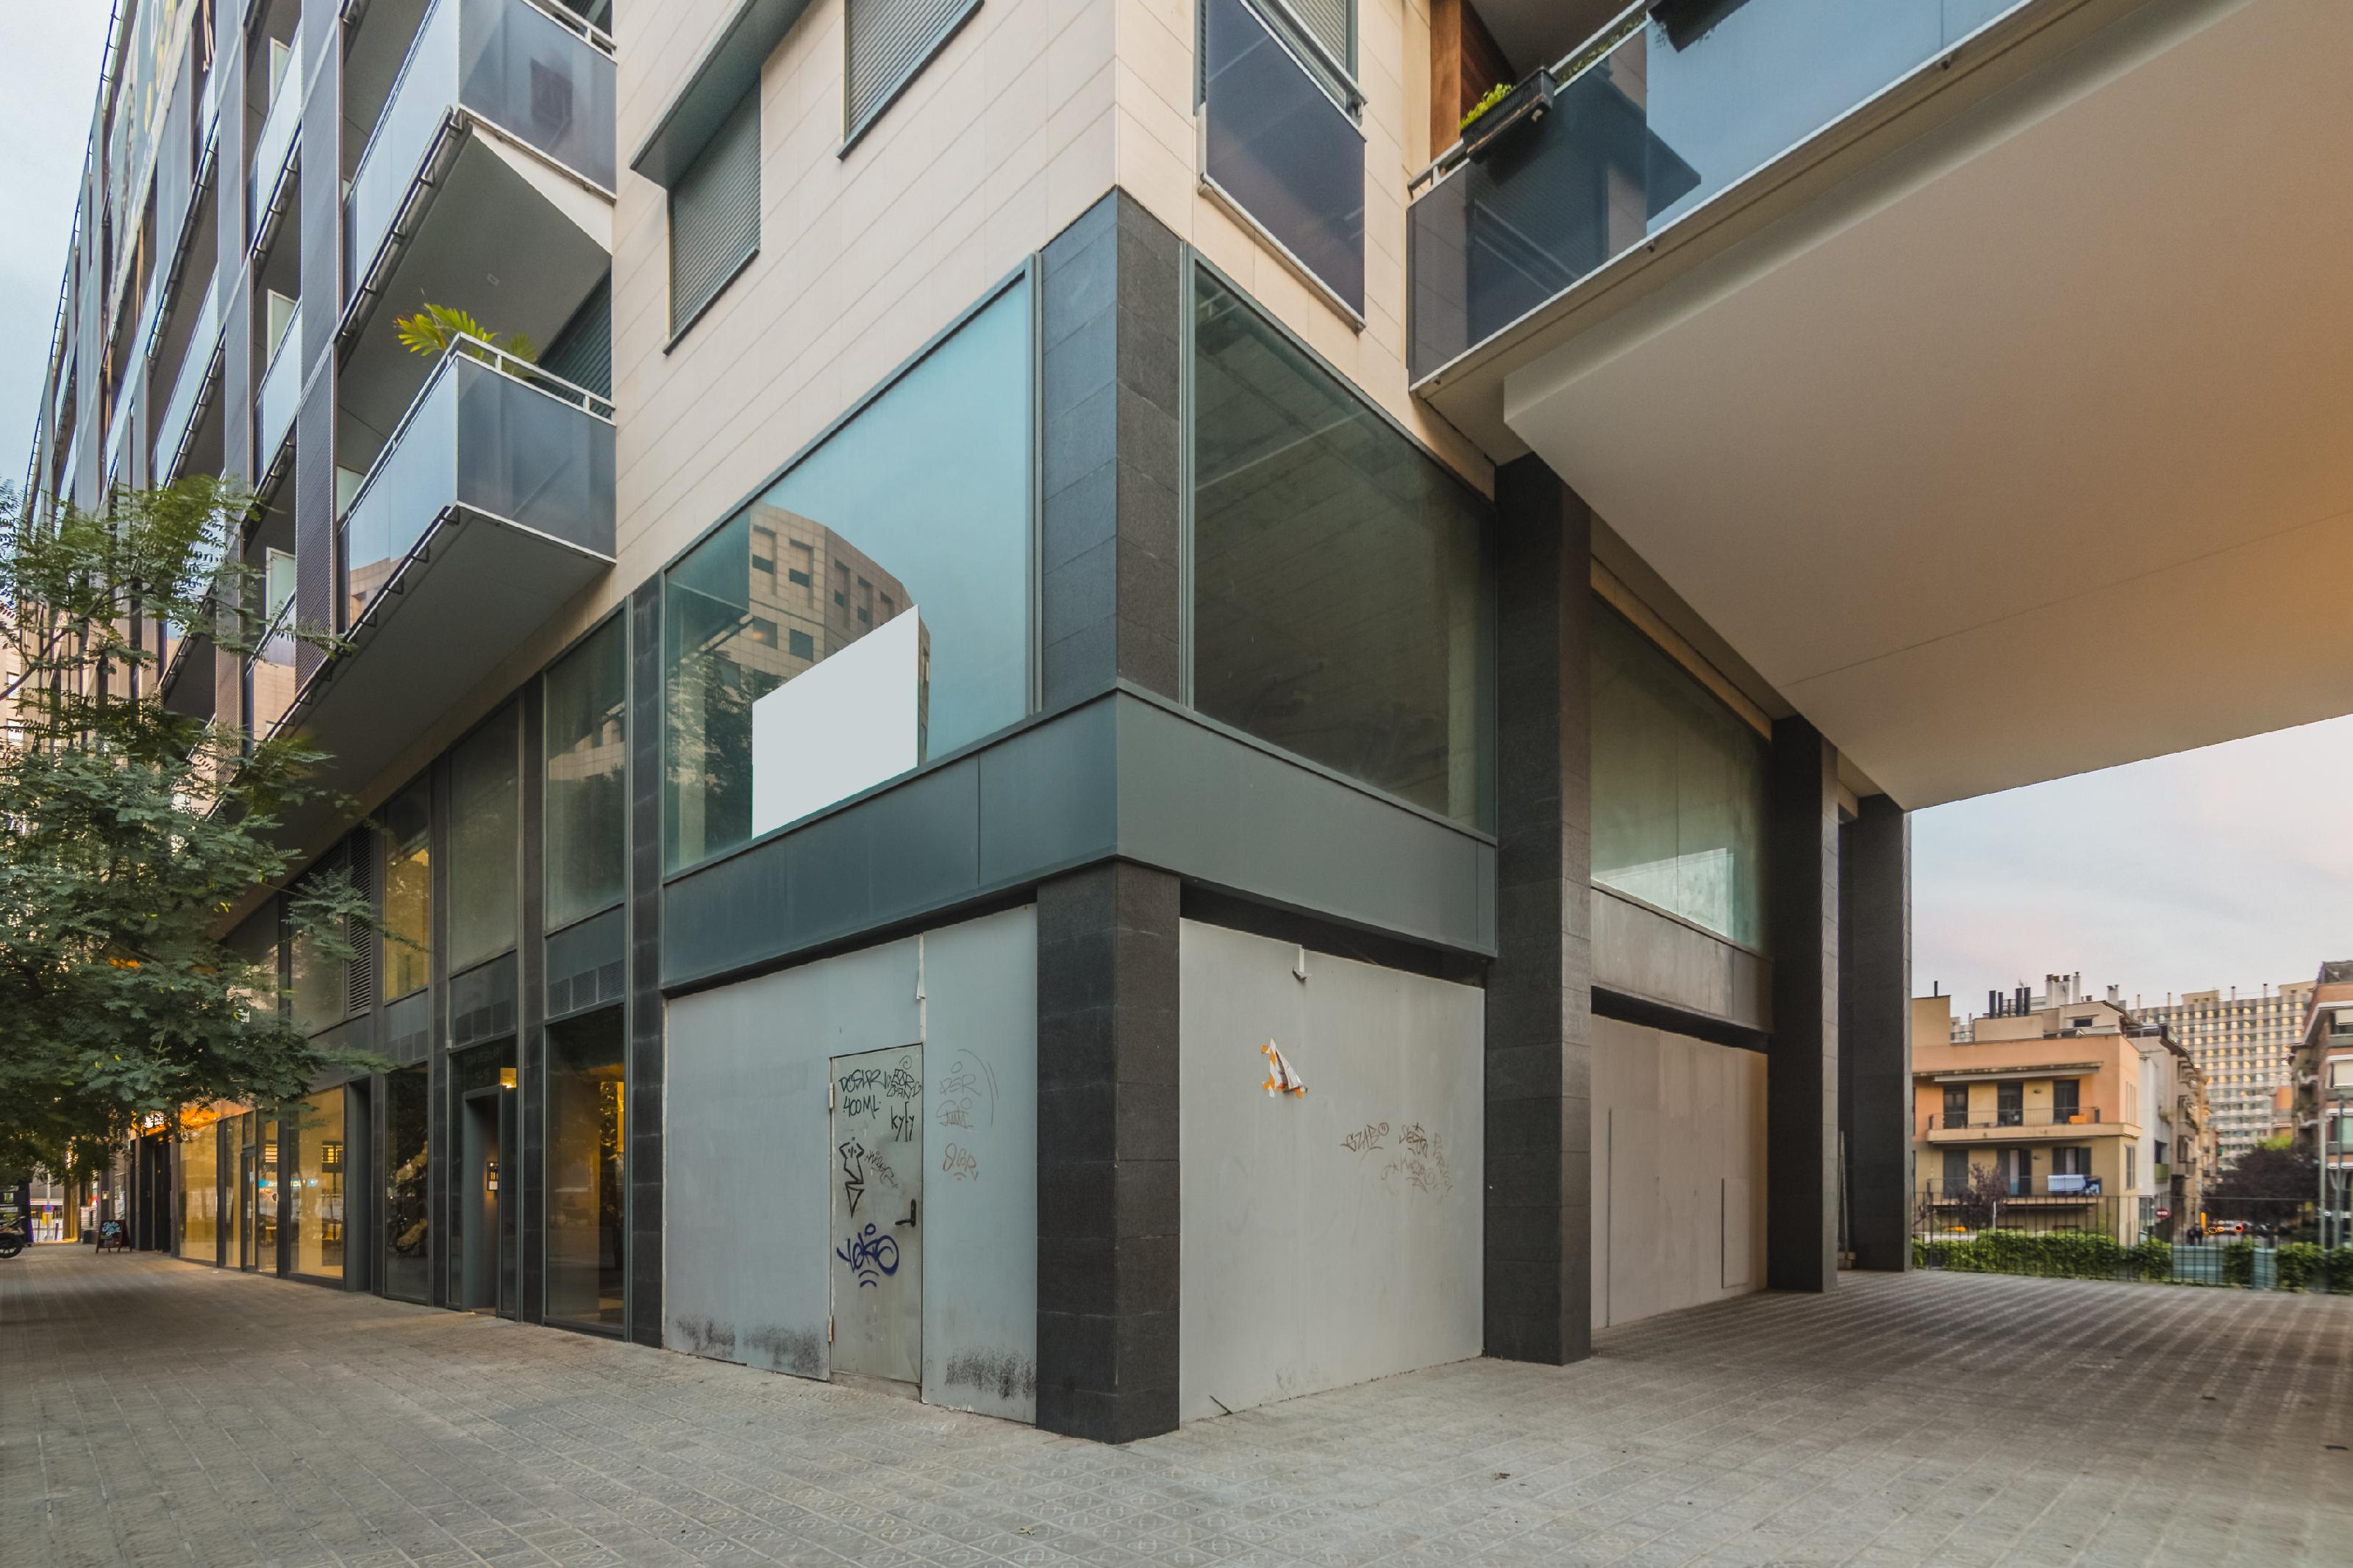 208066 Commercial Premises for sale in Les Corts, Les Corts 1